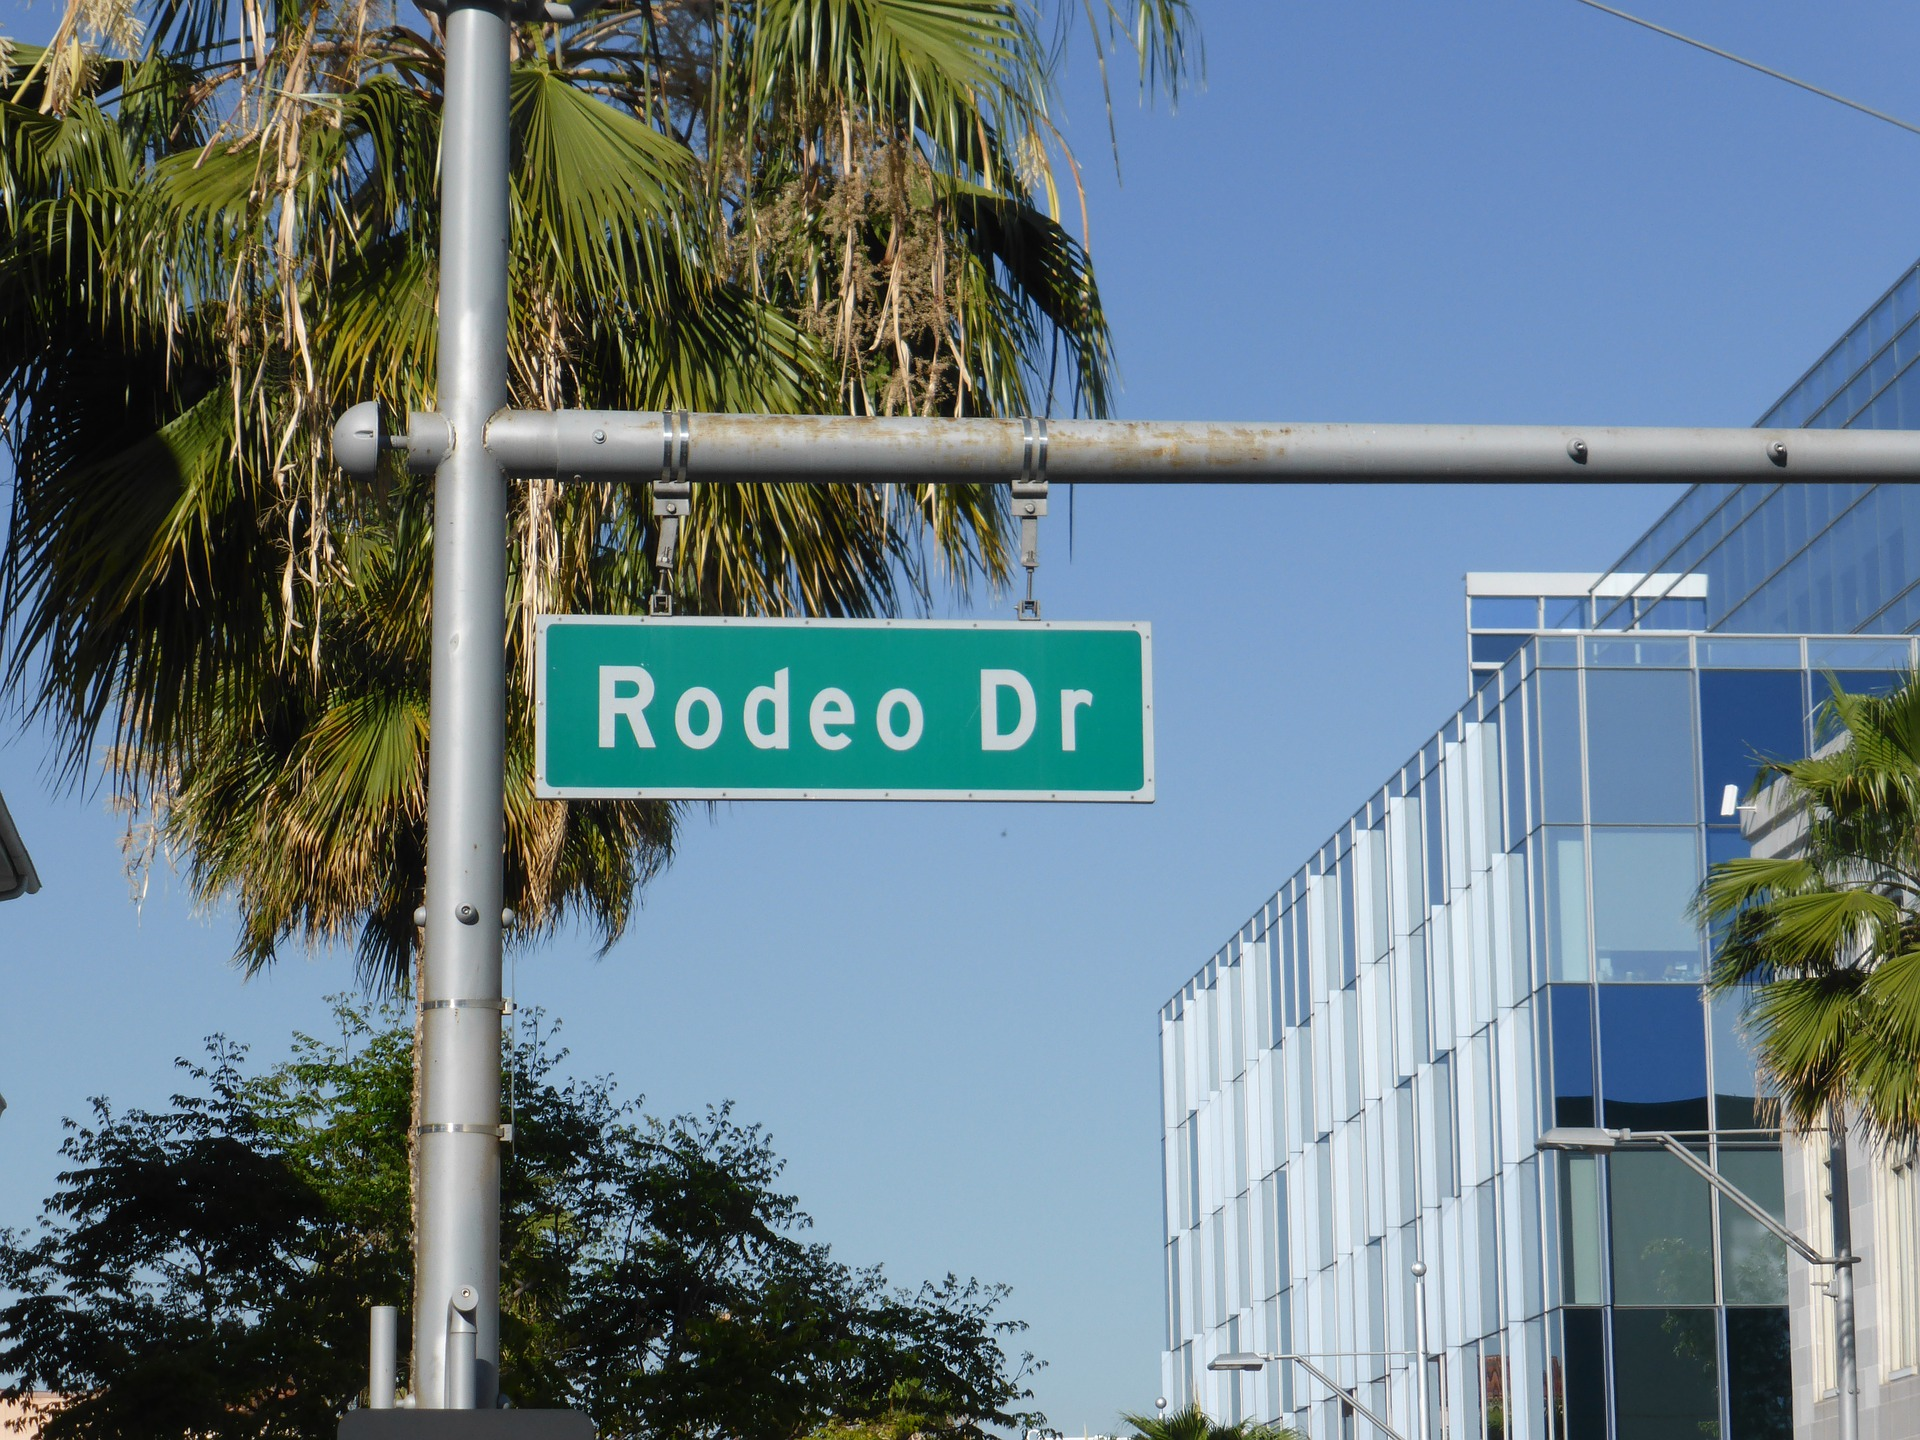 rodeo-drive-848243_1920